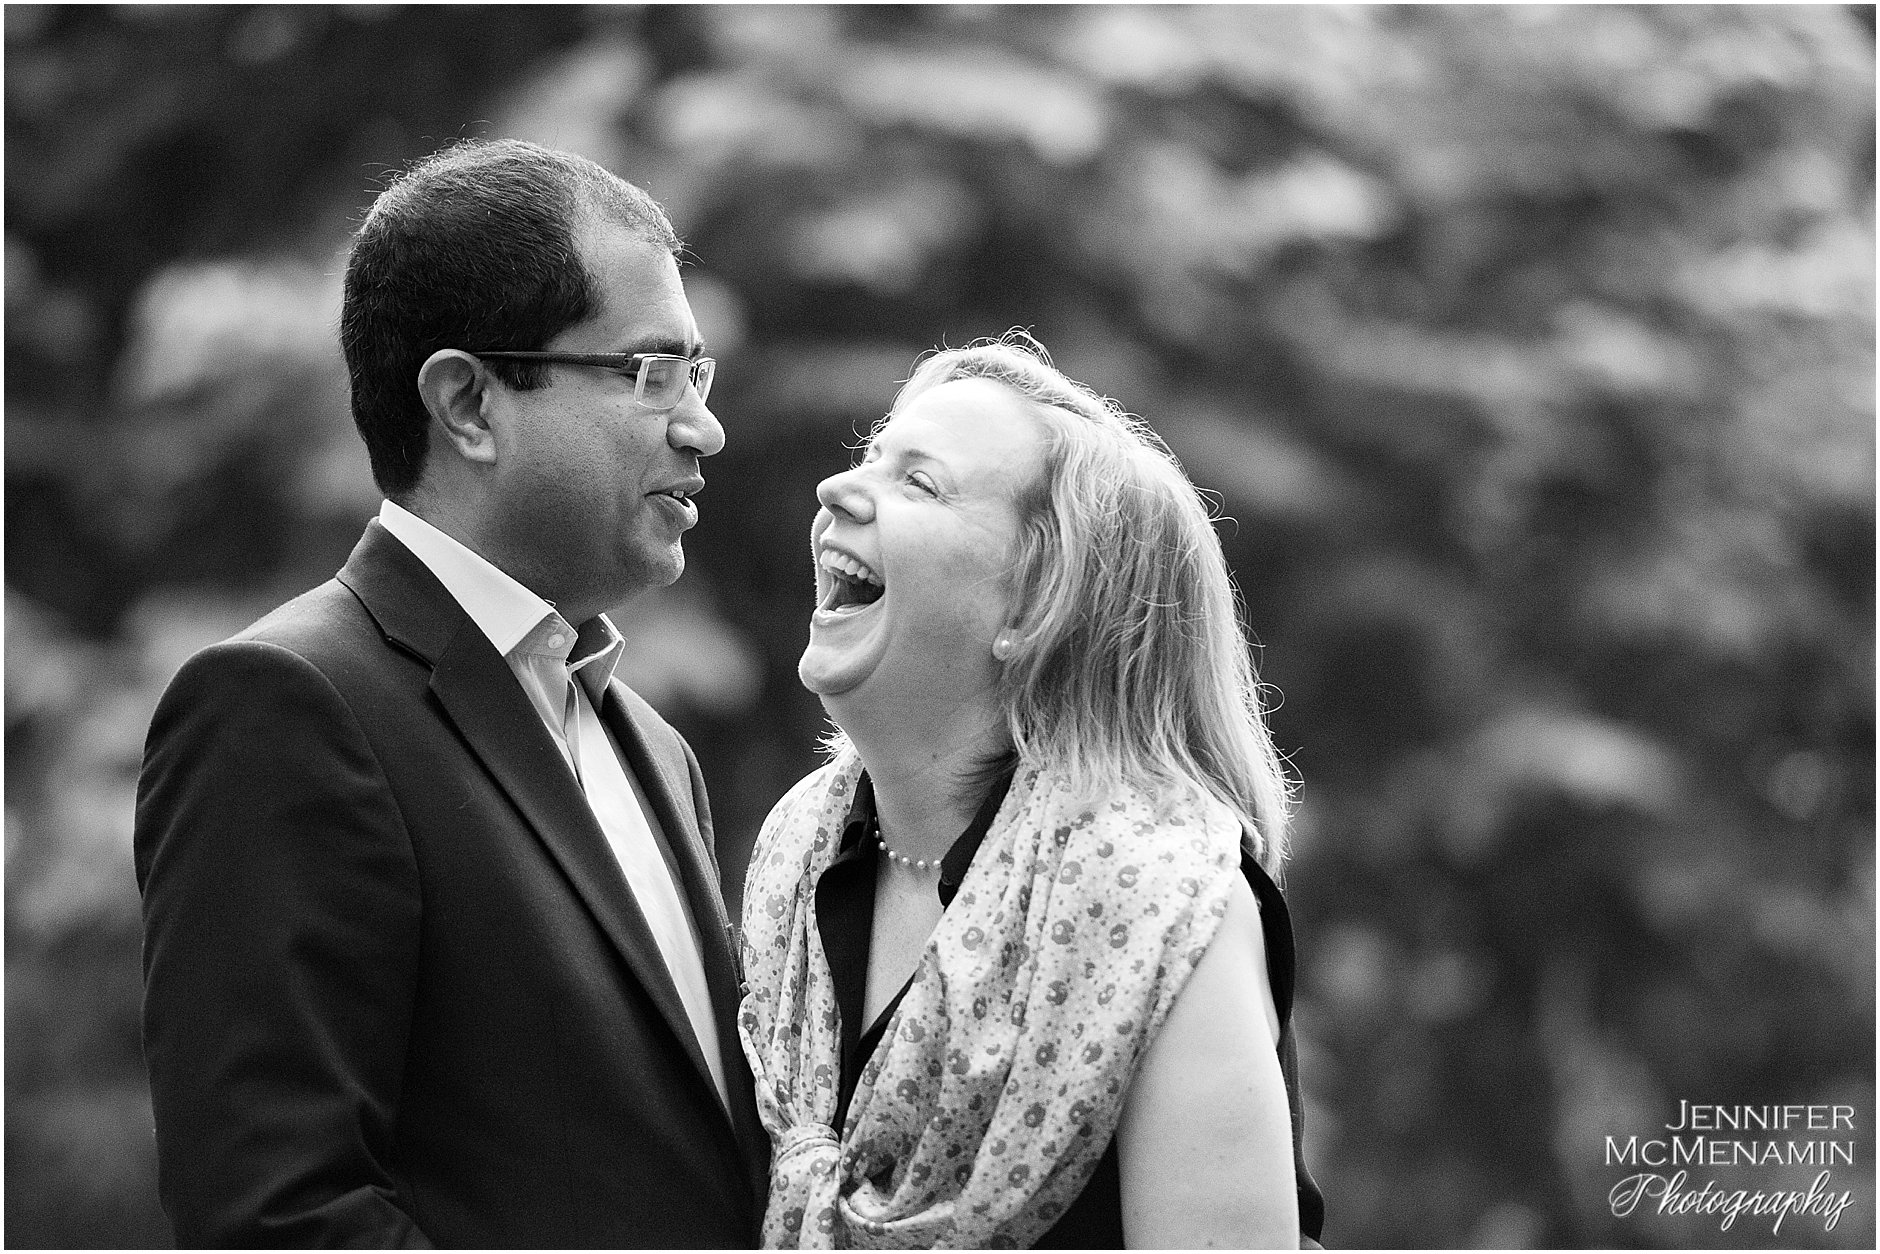 001-AkehurstShetty_0045bw-0015_Jennifer-McMenamin-Photography-New-York-City-engagement-photos